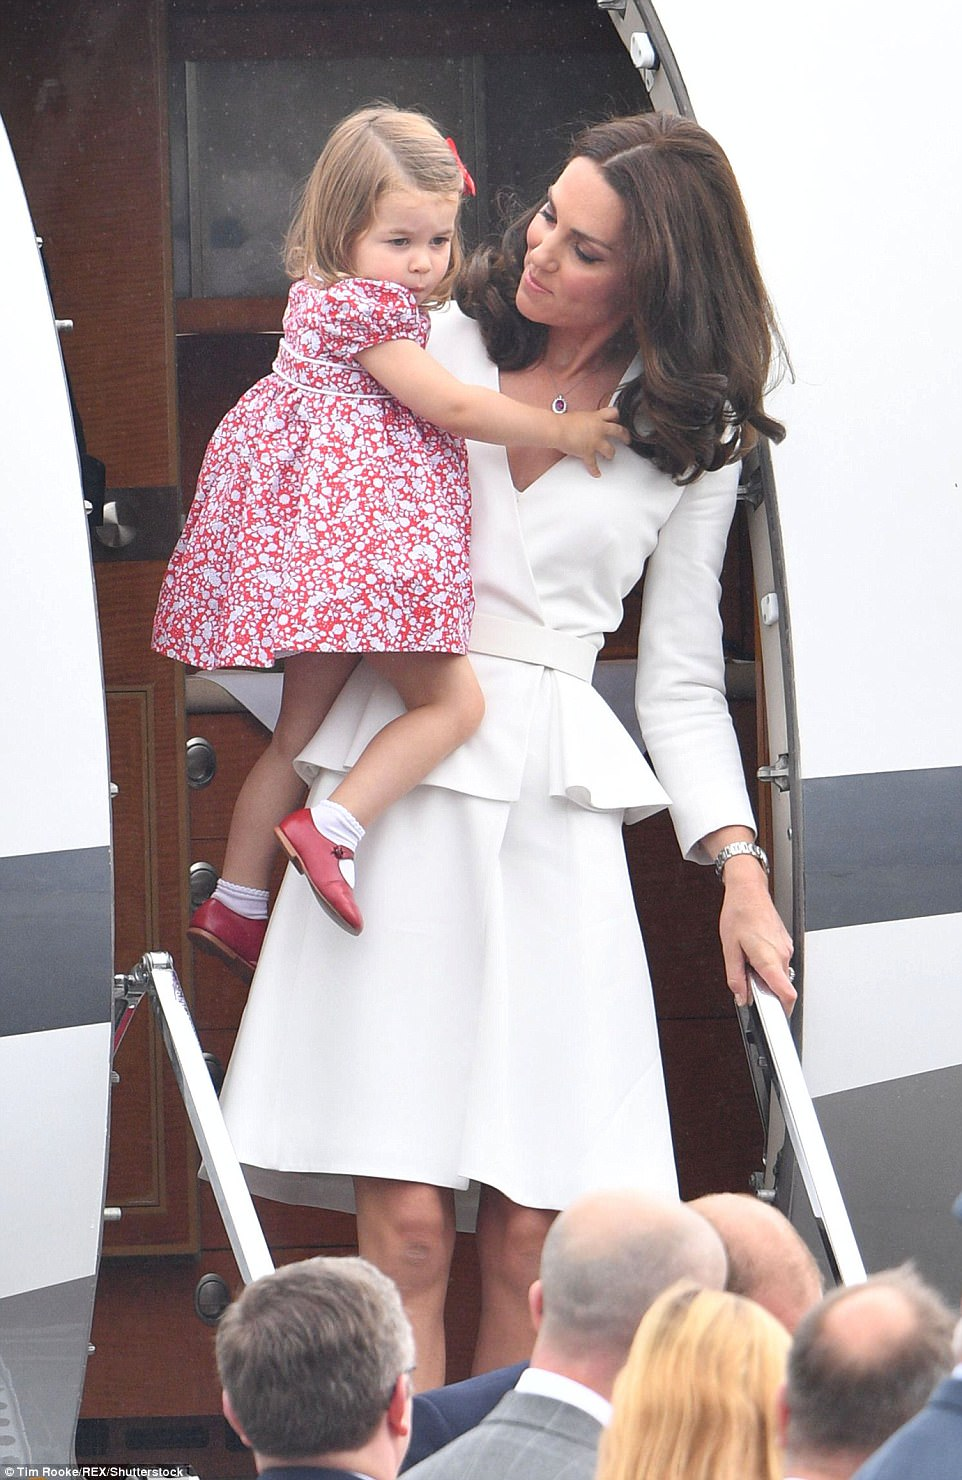 Princess Charlotte was pretty as a picture in a floral dress with adorable red shoes and white socks. The trip is likely to be seen as another Brexit diplomacy tour, helping to maintain and strengthen the UK's relations with Europe as it leaves the EU